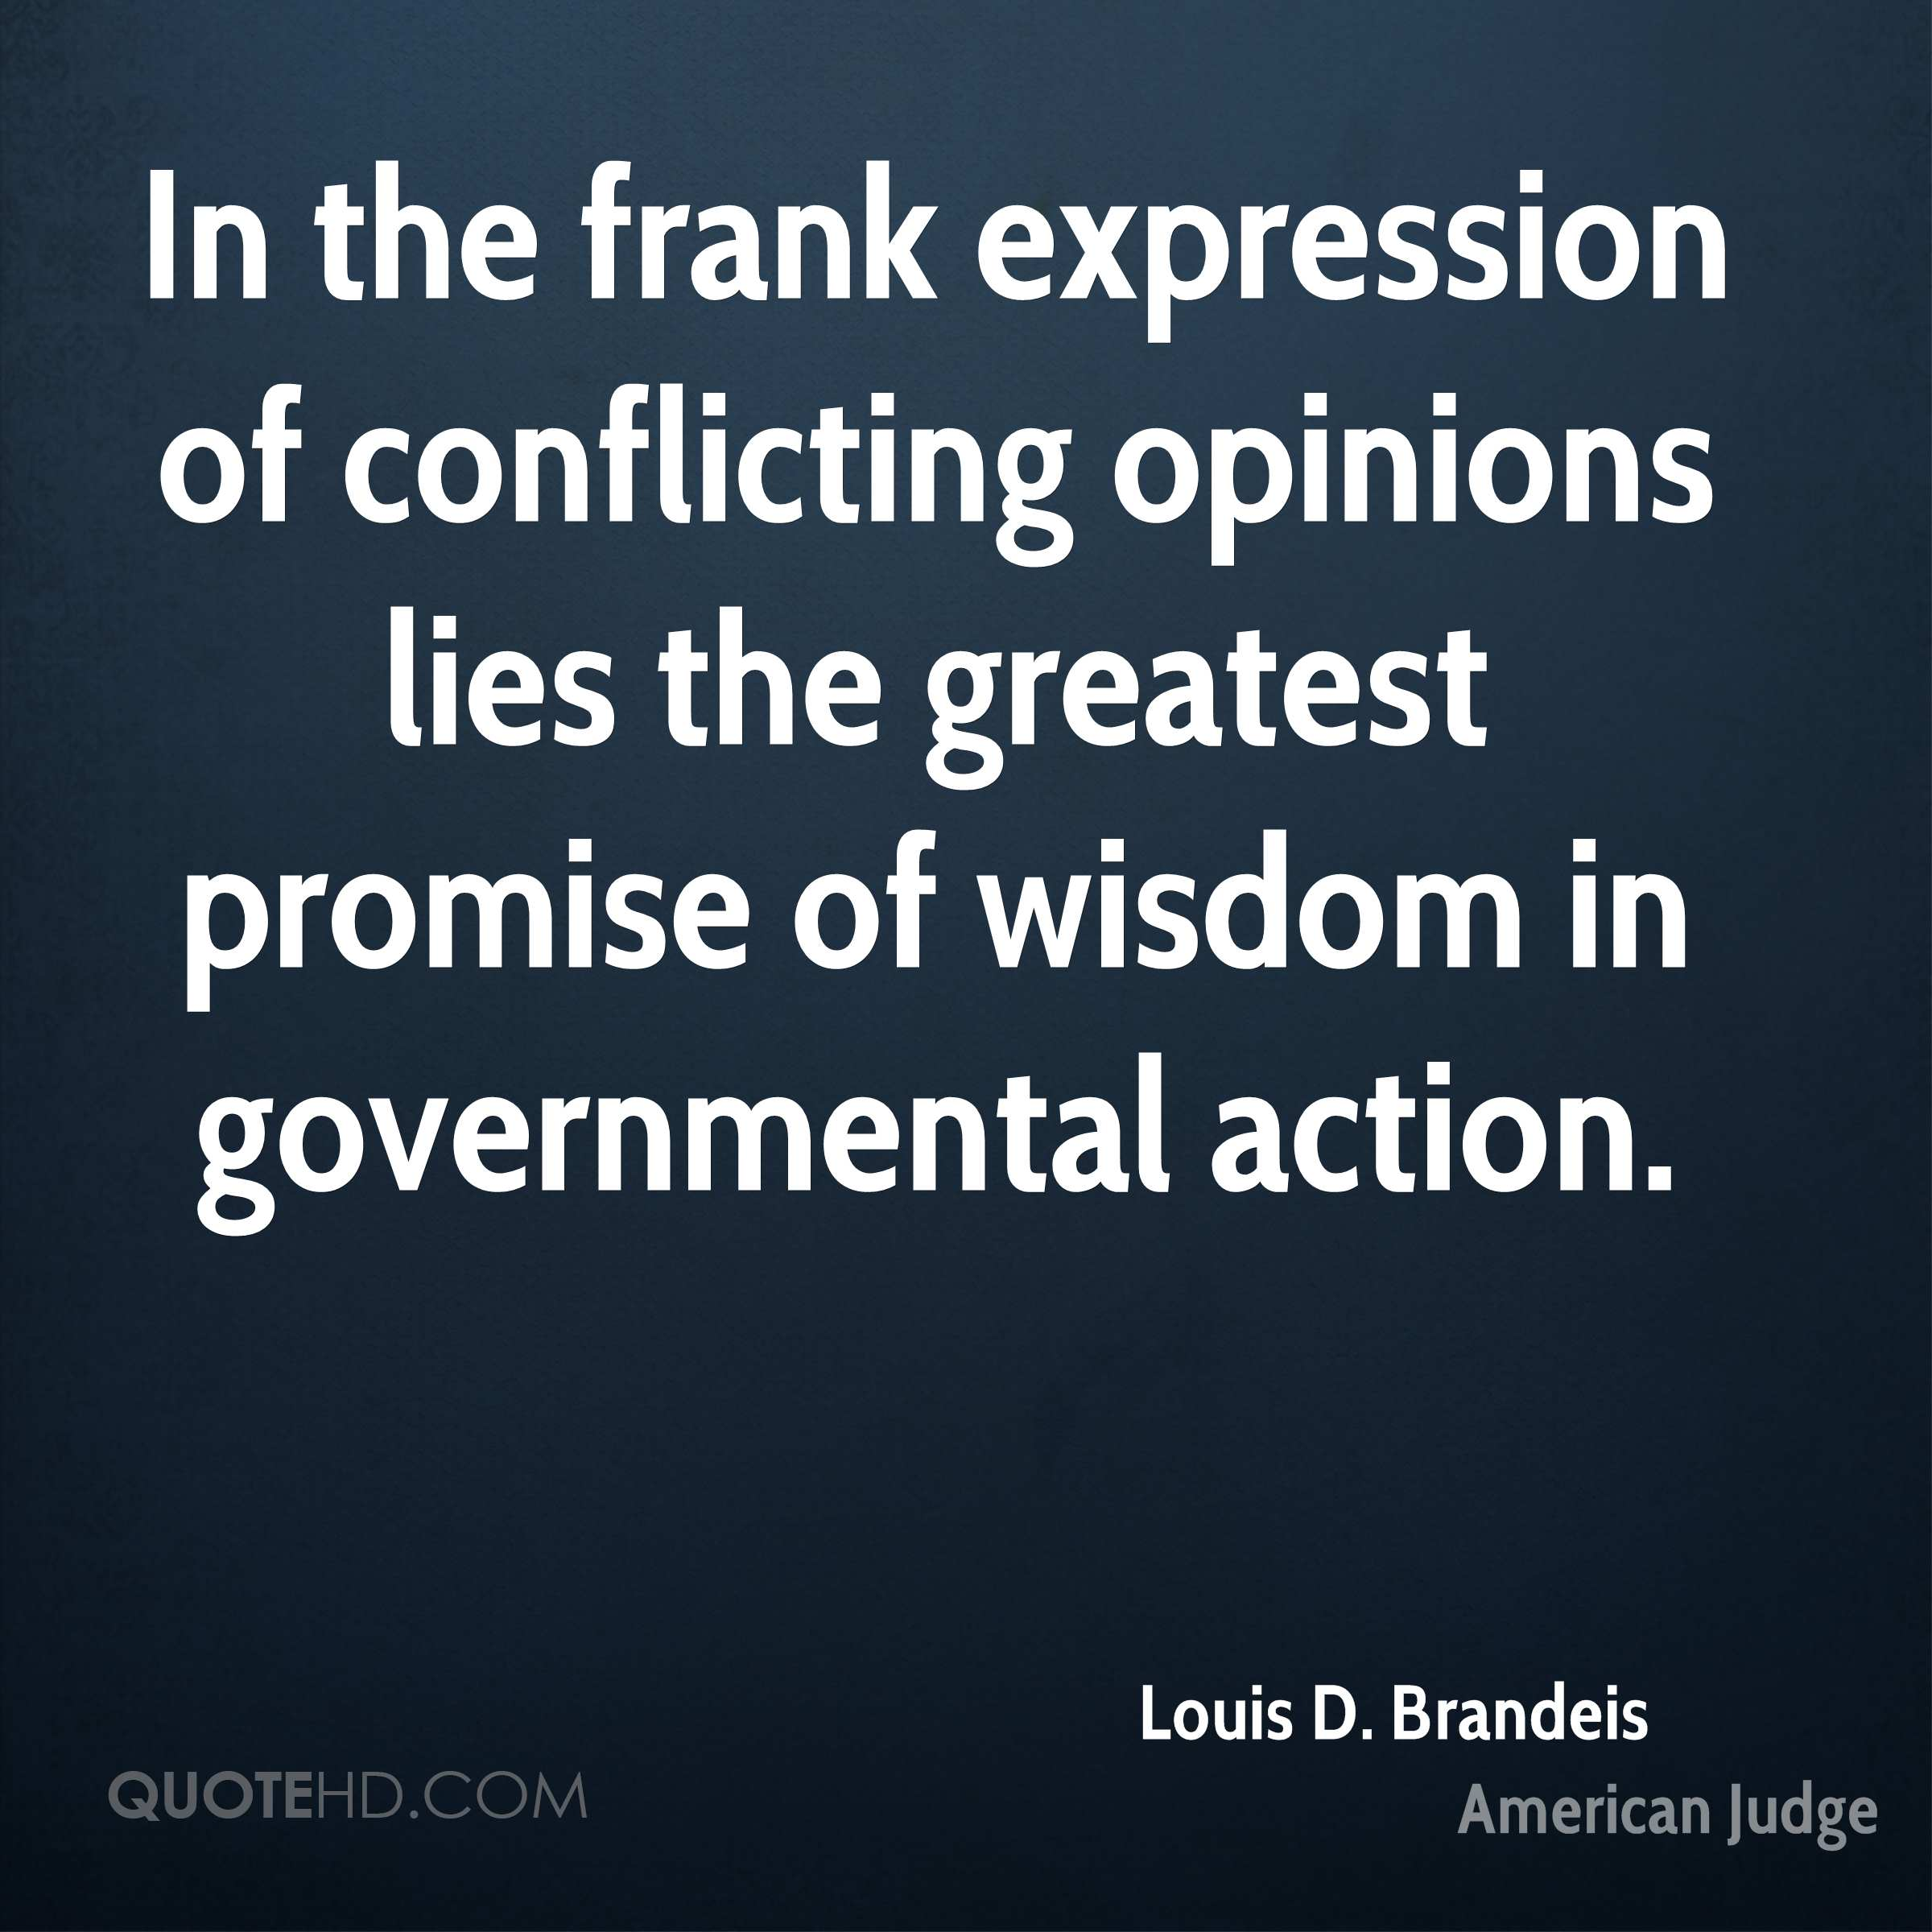 In the frank expression of conflicting opinions lies the greatest promise of wisdom in governmental action.